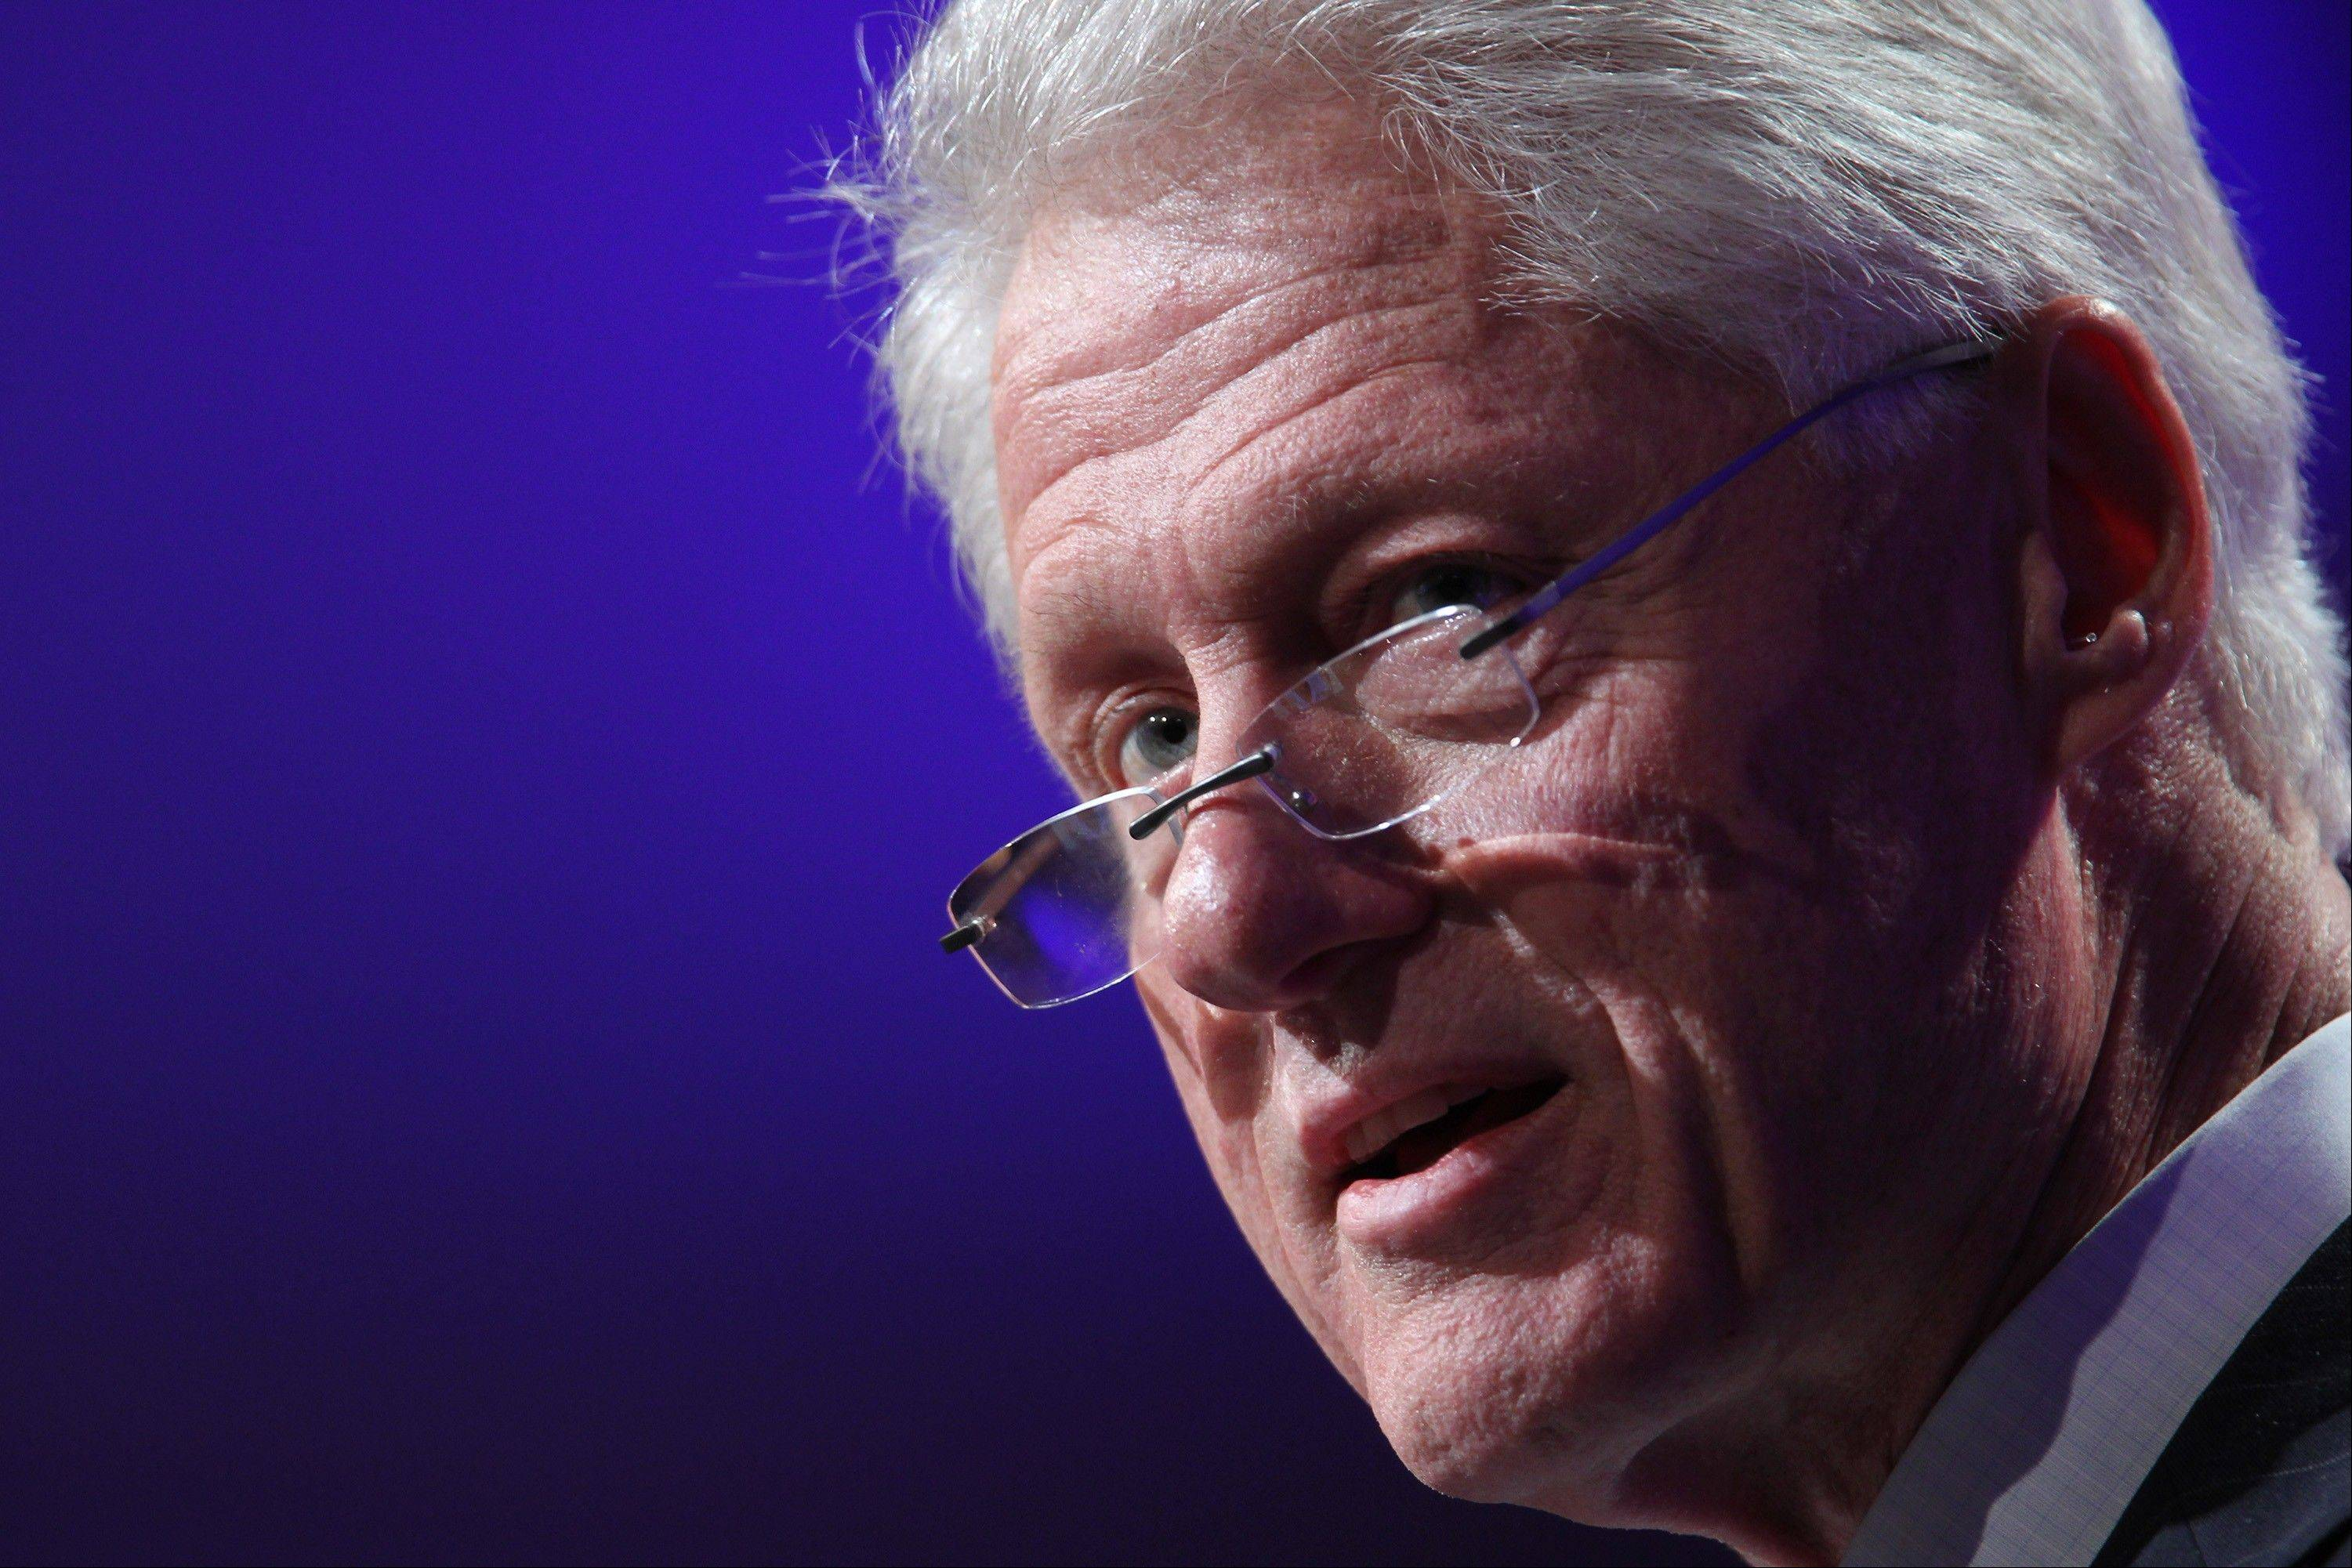 Former U.S. President Bill Clinton speaks during the Clinton Global Initiative in New York, U.S., on Sunday.